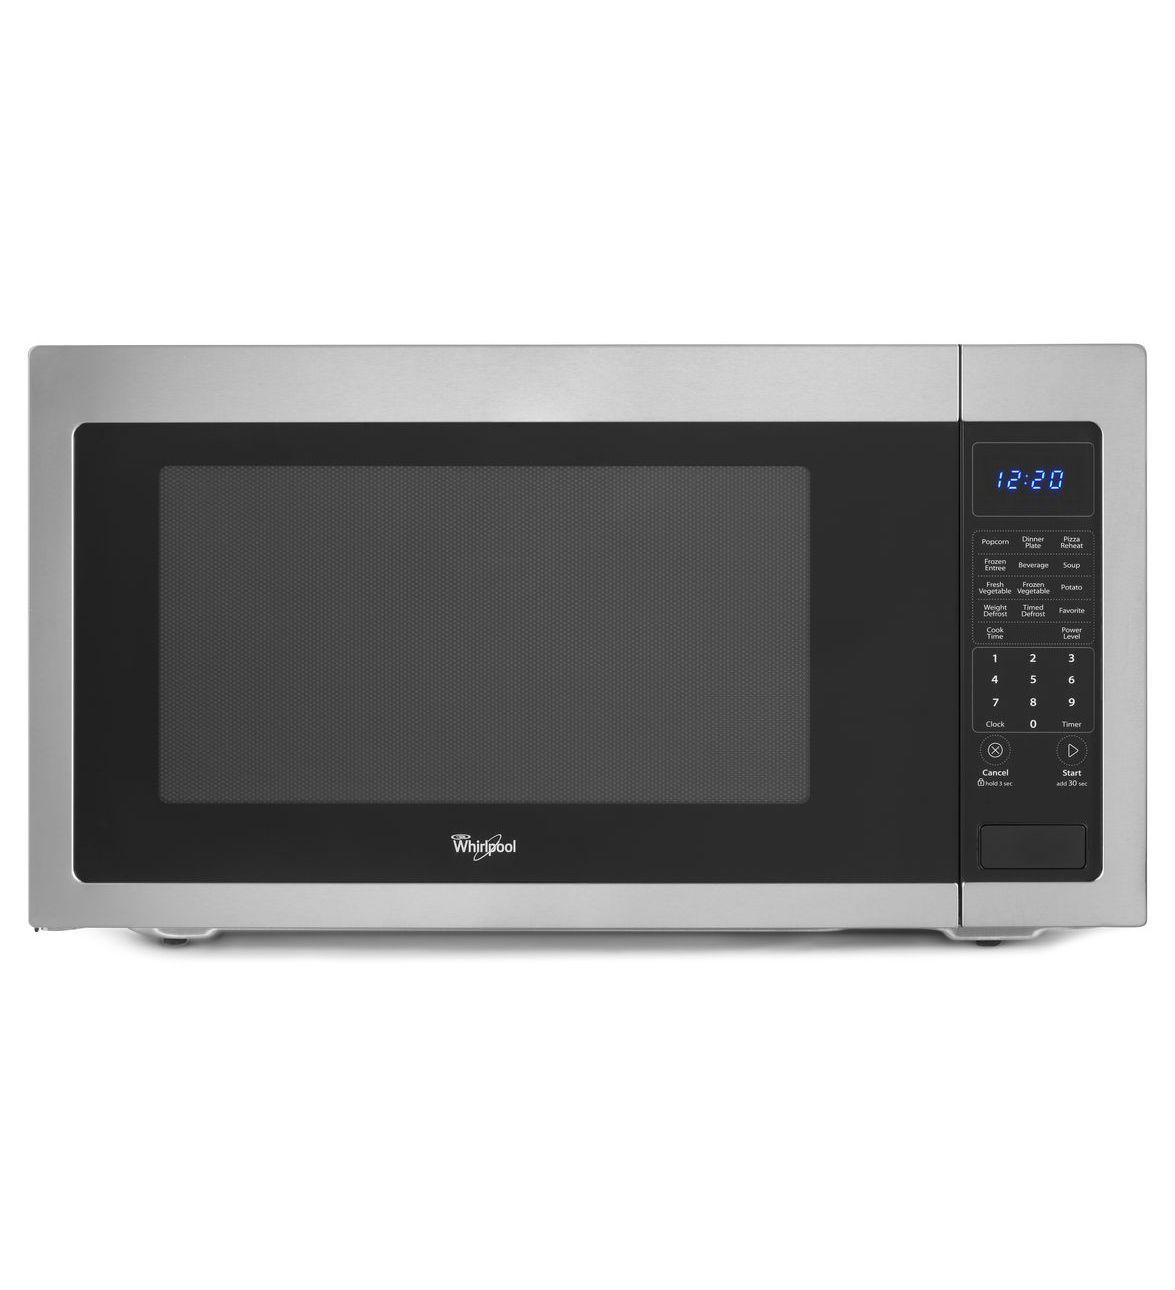 Whirlpool 174 2 2 Cu Ft Countertop Microwave With Greater